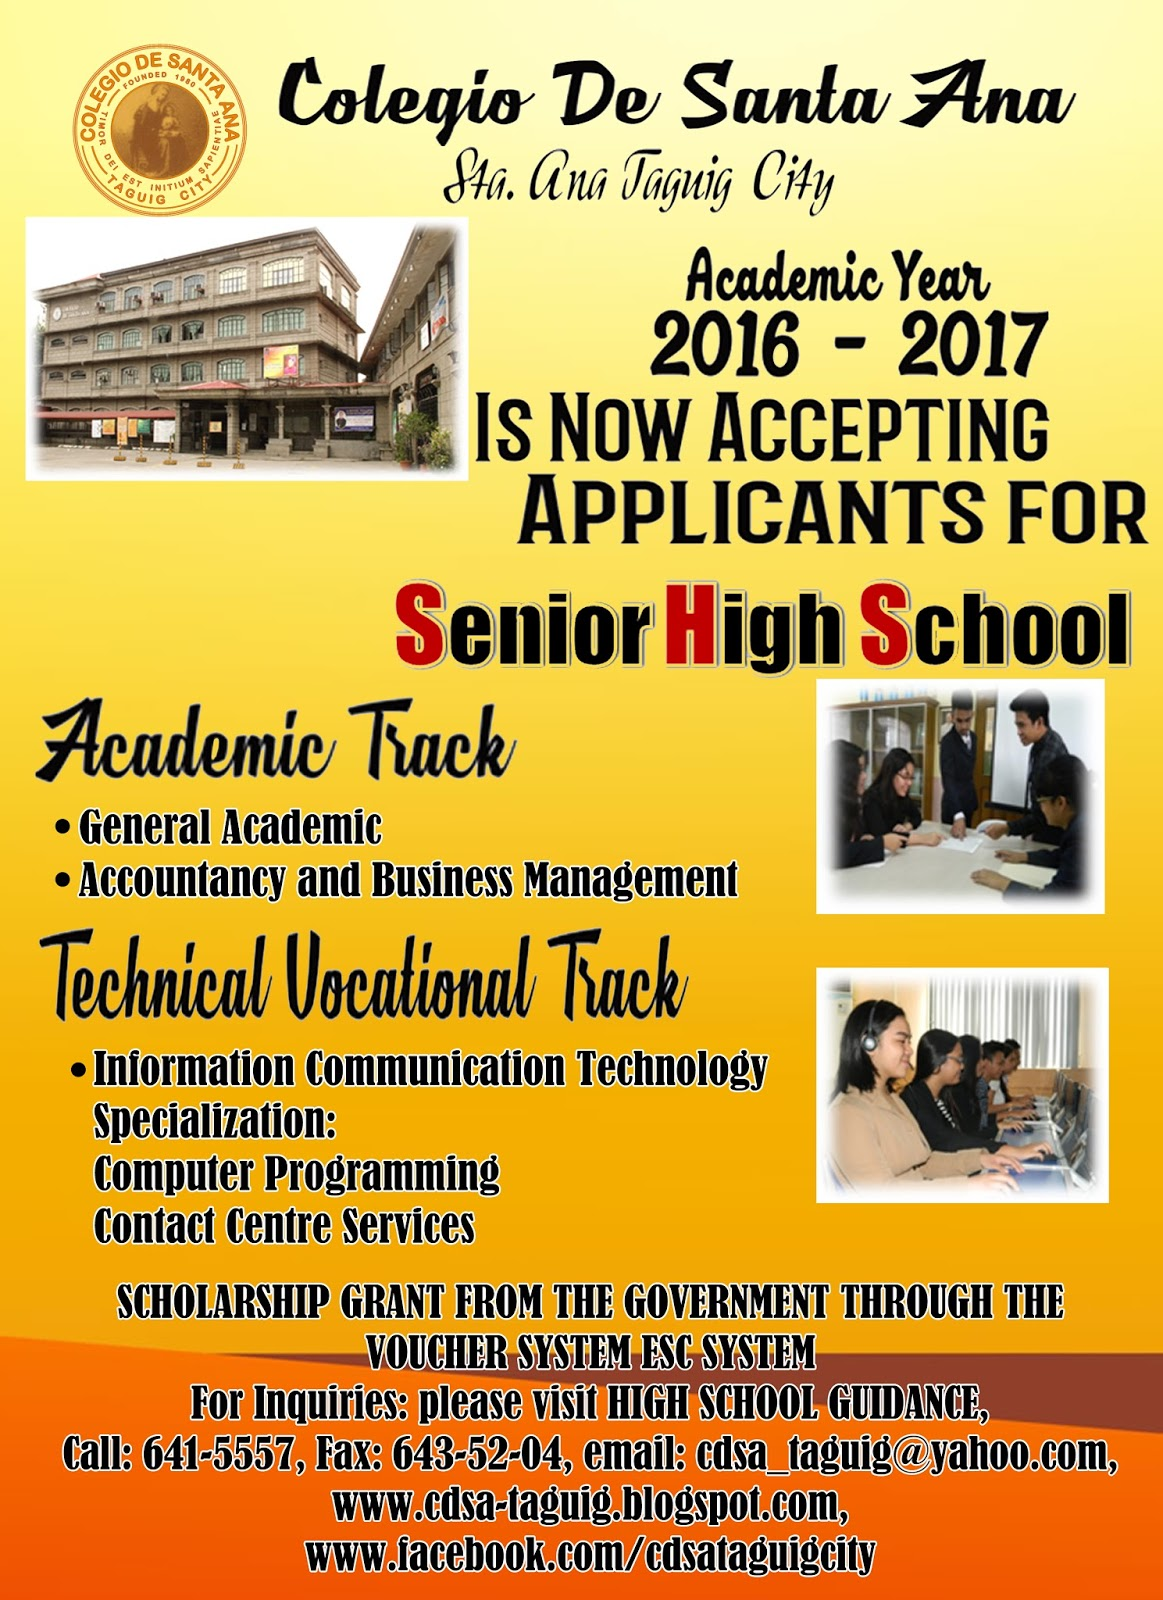 Colegio de santa ana colegio de santa ana is now accepting students for grade 11 senior high school for academic year 2016 2017 please refer to the images below aiddatafo Choice Image